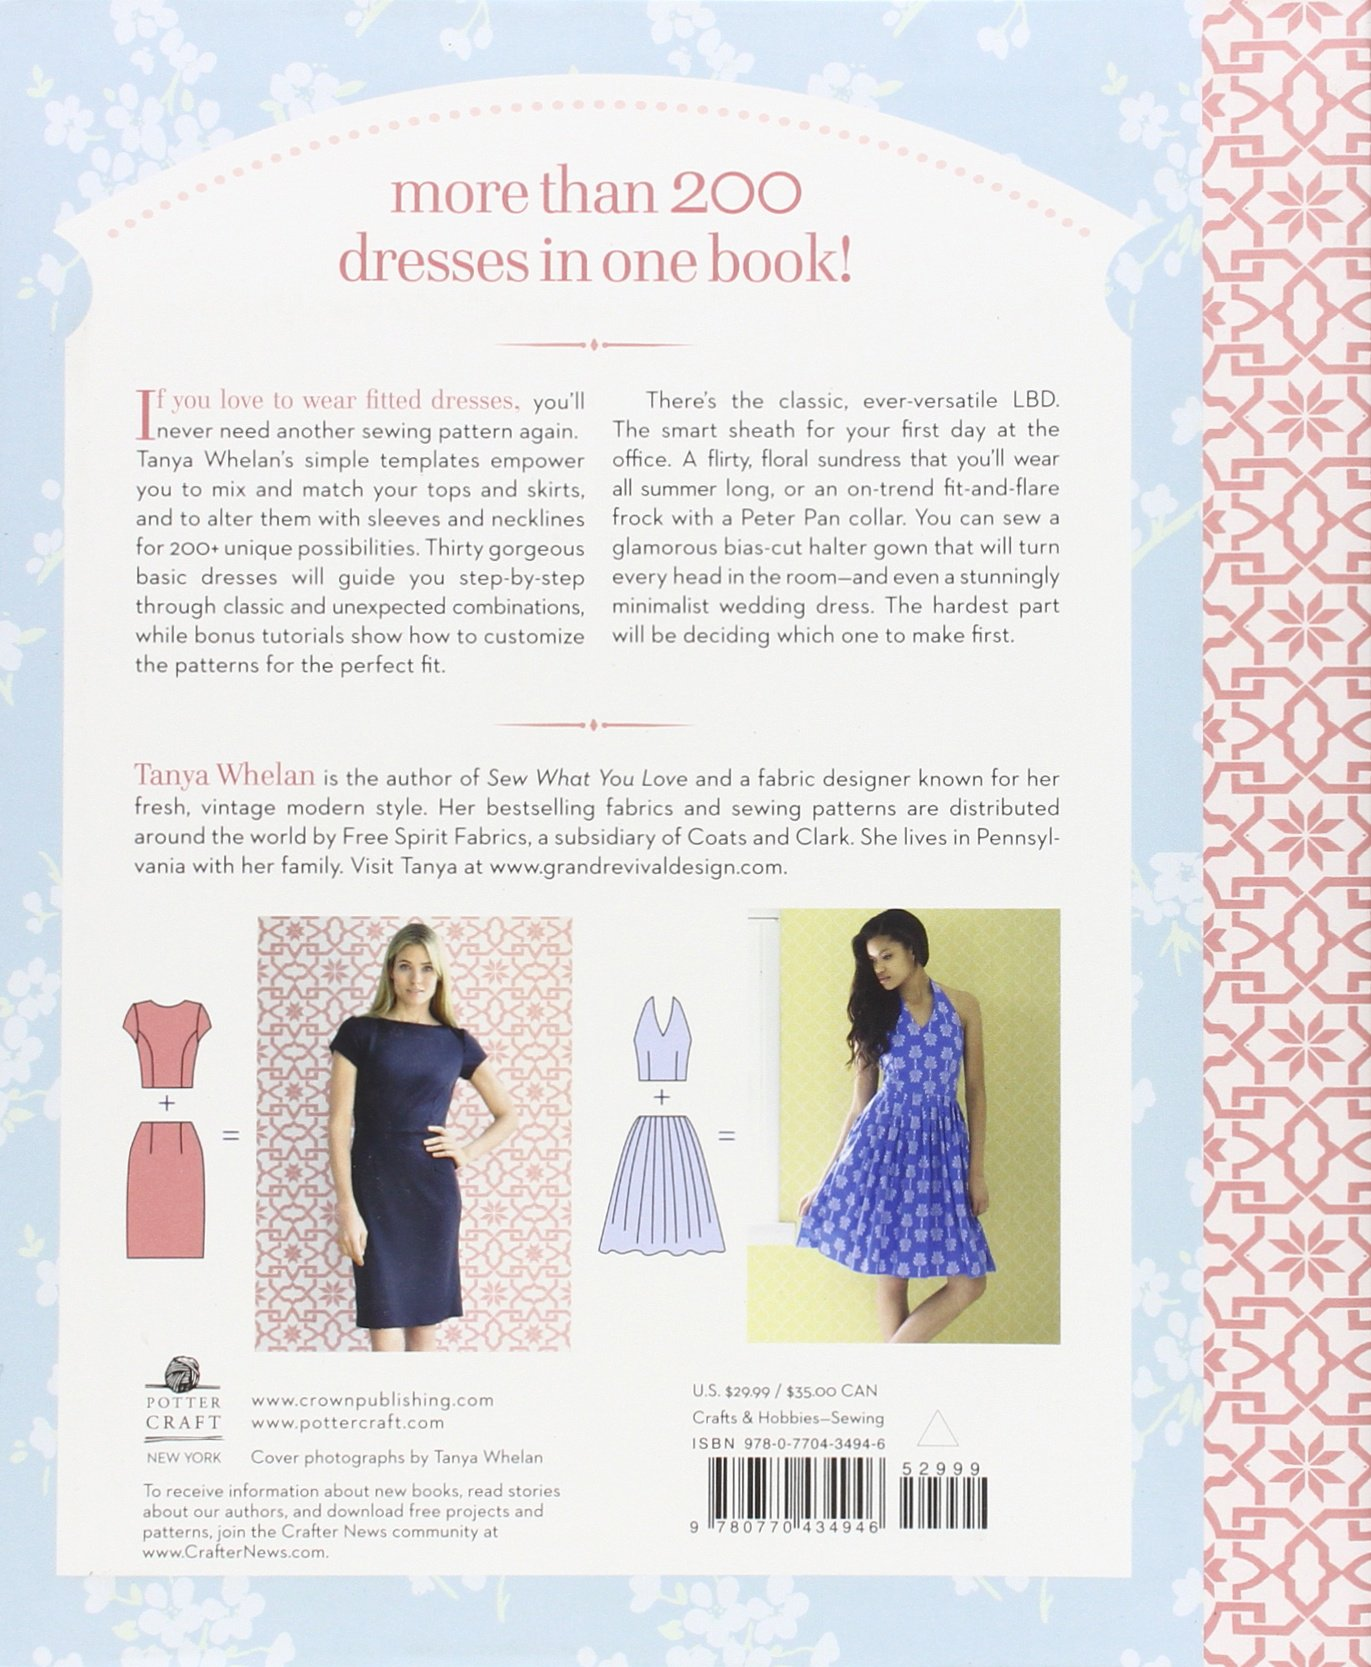 Amazon.com: Sew Many Dresses, Sew Little Time: The Ultimate Dressmaking  Guide (9780770434946): Tanya Whelan: Books